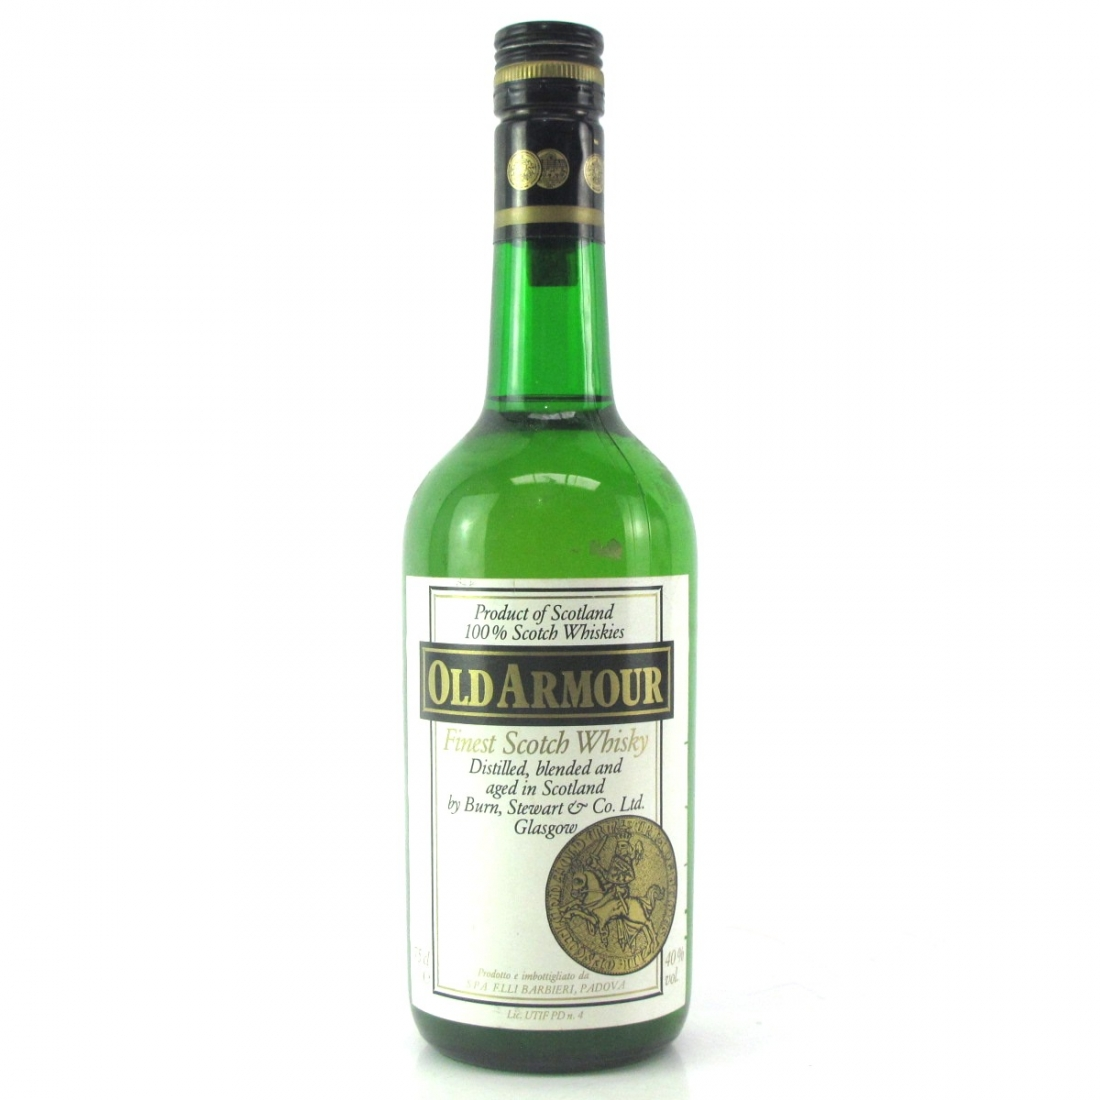 Old Armour Finest Scotch 1980s